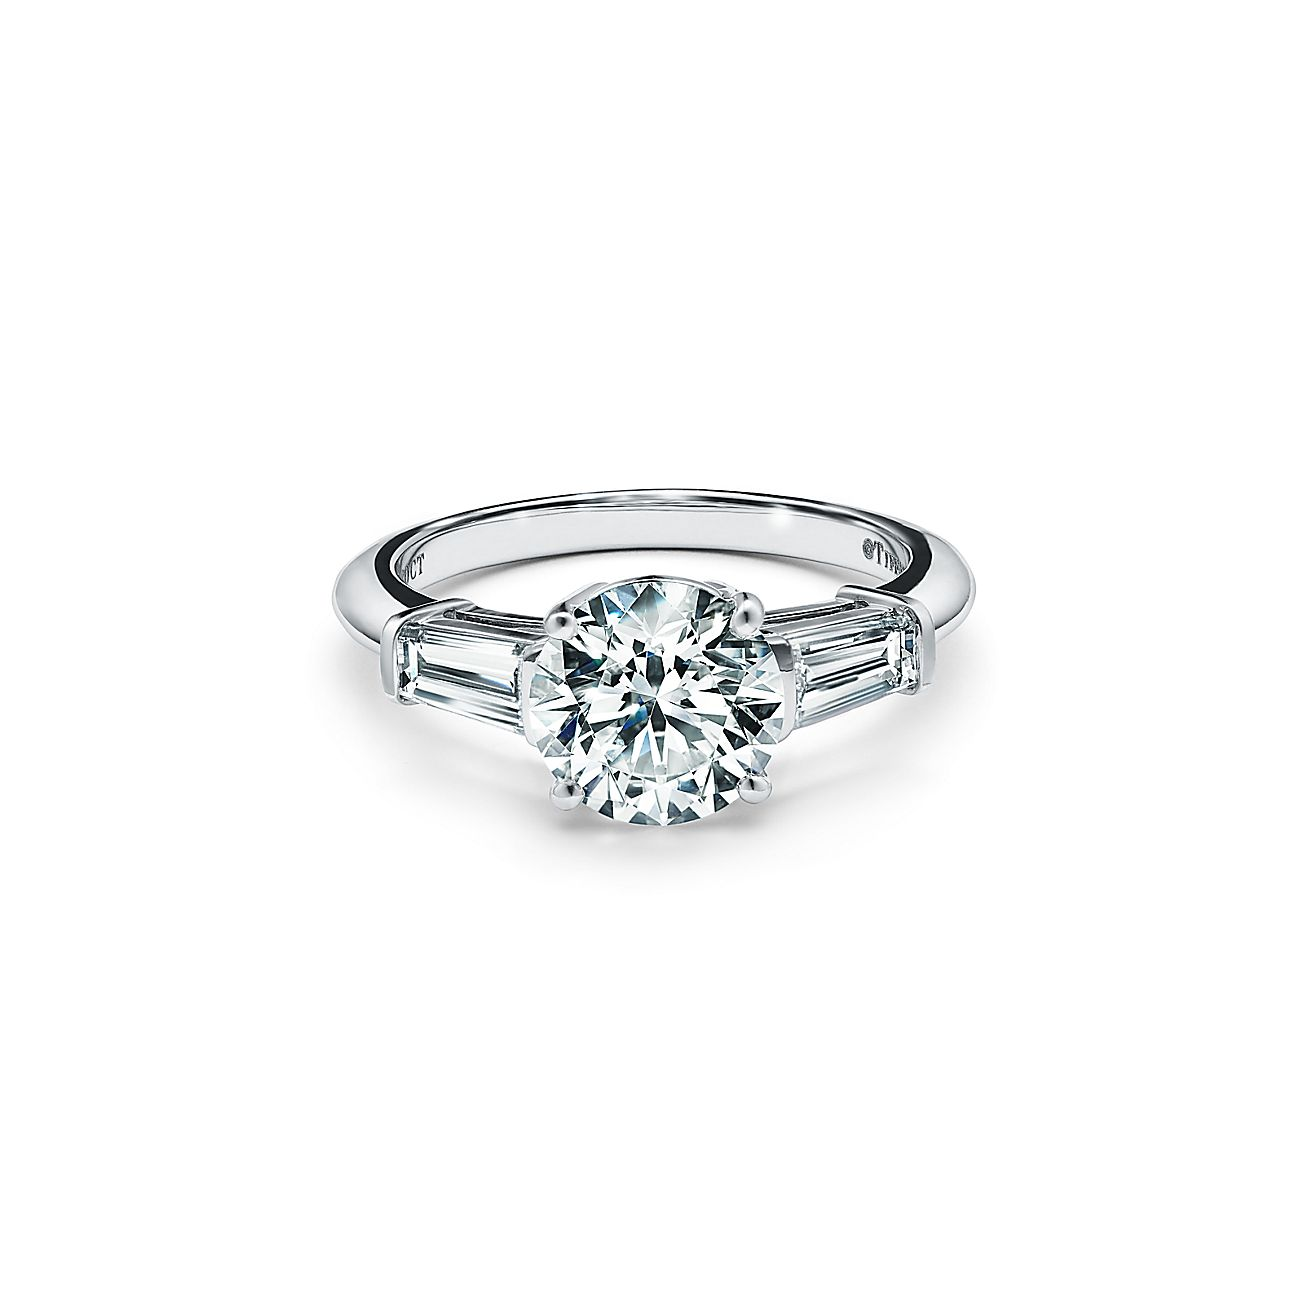 Tiffany Three Stone Engagement Ring With Baguette Side Stones In Platinum